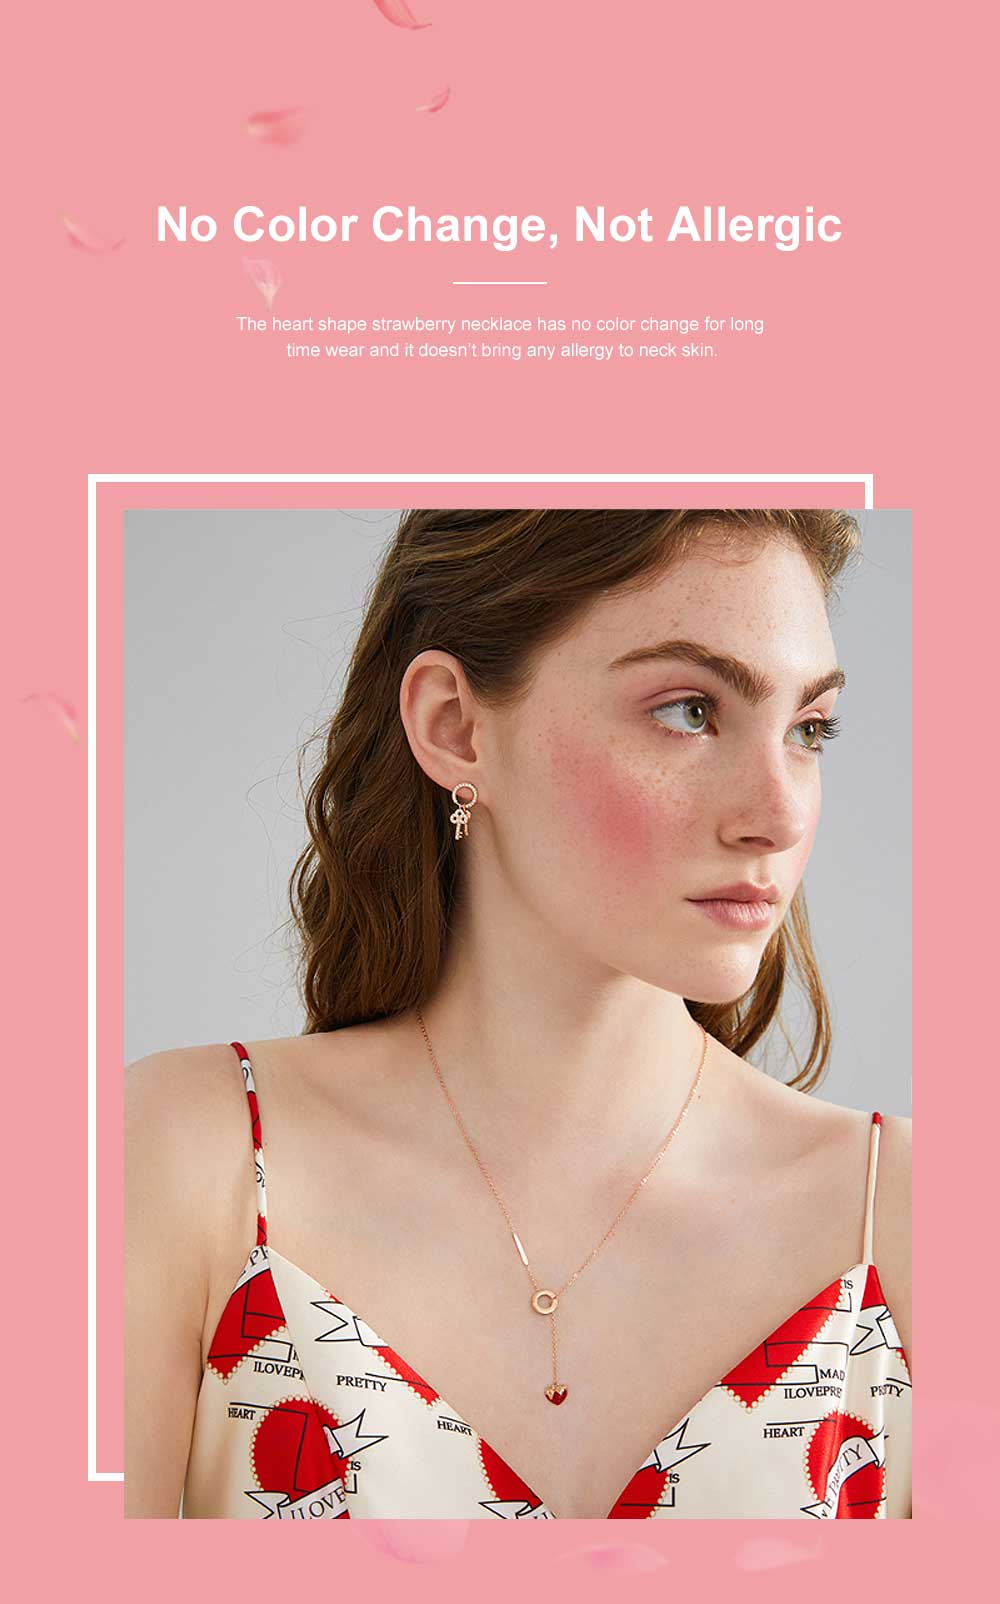 Heart Shape Strawberry Necklace Wear Resistant Lustrous Titanium Steel Clavicle Necklace Stainless Steel Jewelry Online Bestseller Minority Design Necklace 1